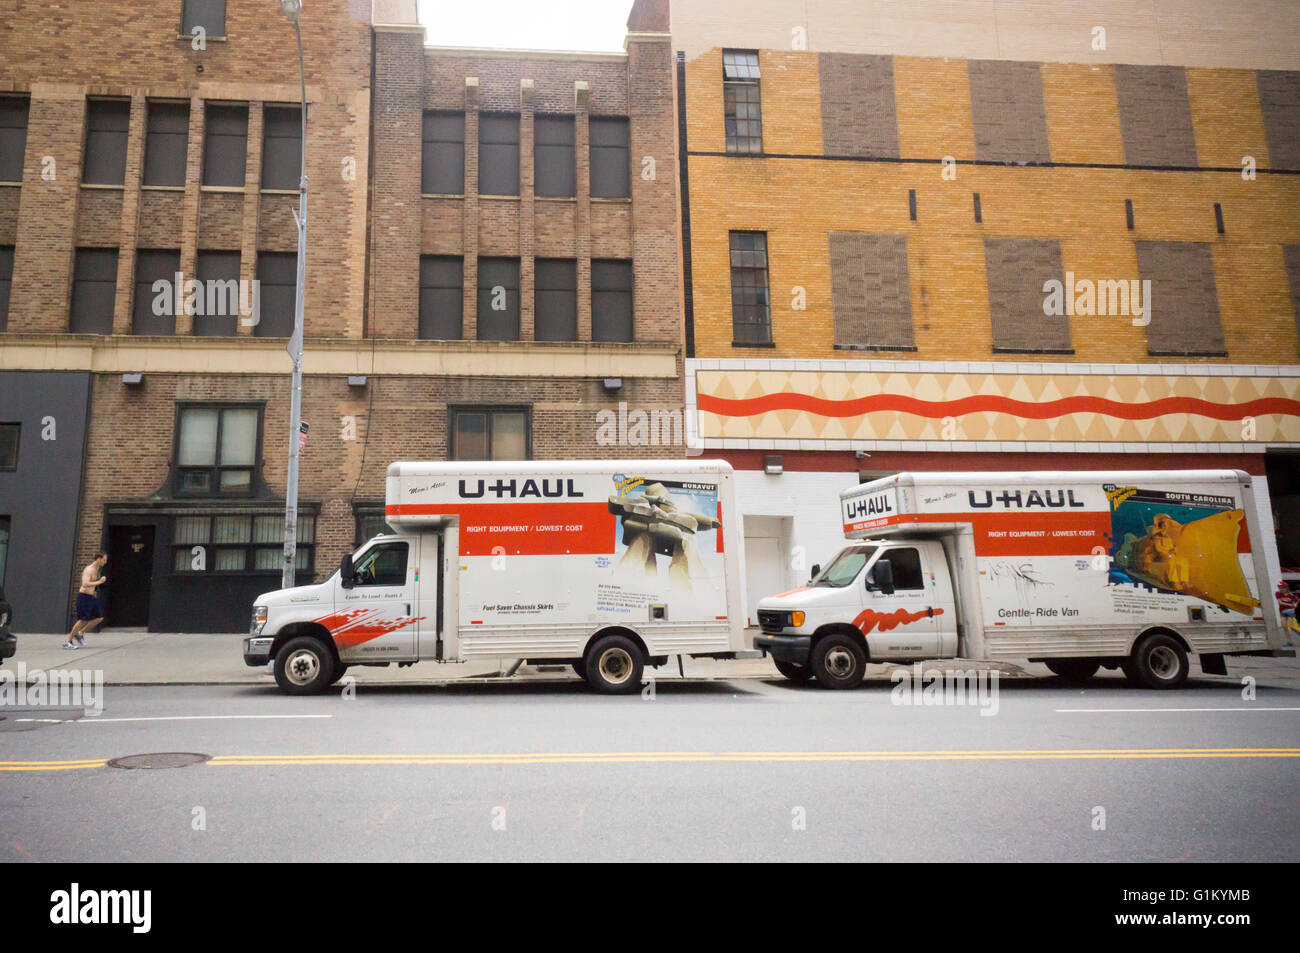 U Haul Self Moving Trucks Parked In The Chelsea Neighborhood Of New York On  Saturday, May 14, 2016. U Haul, A Brand Of Amerco, Is The Largest Moving And  ...